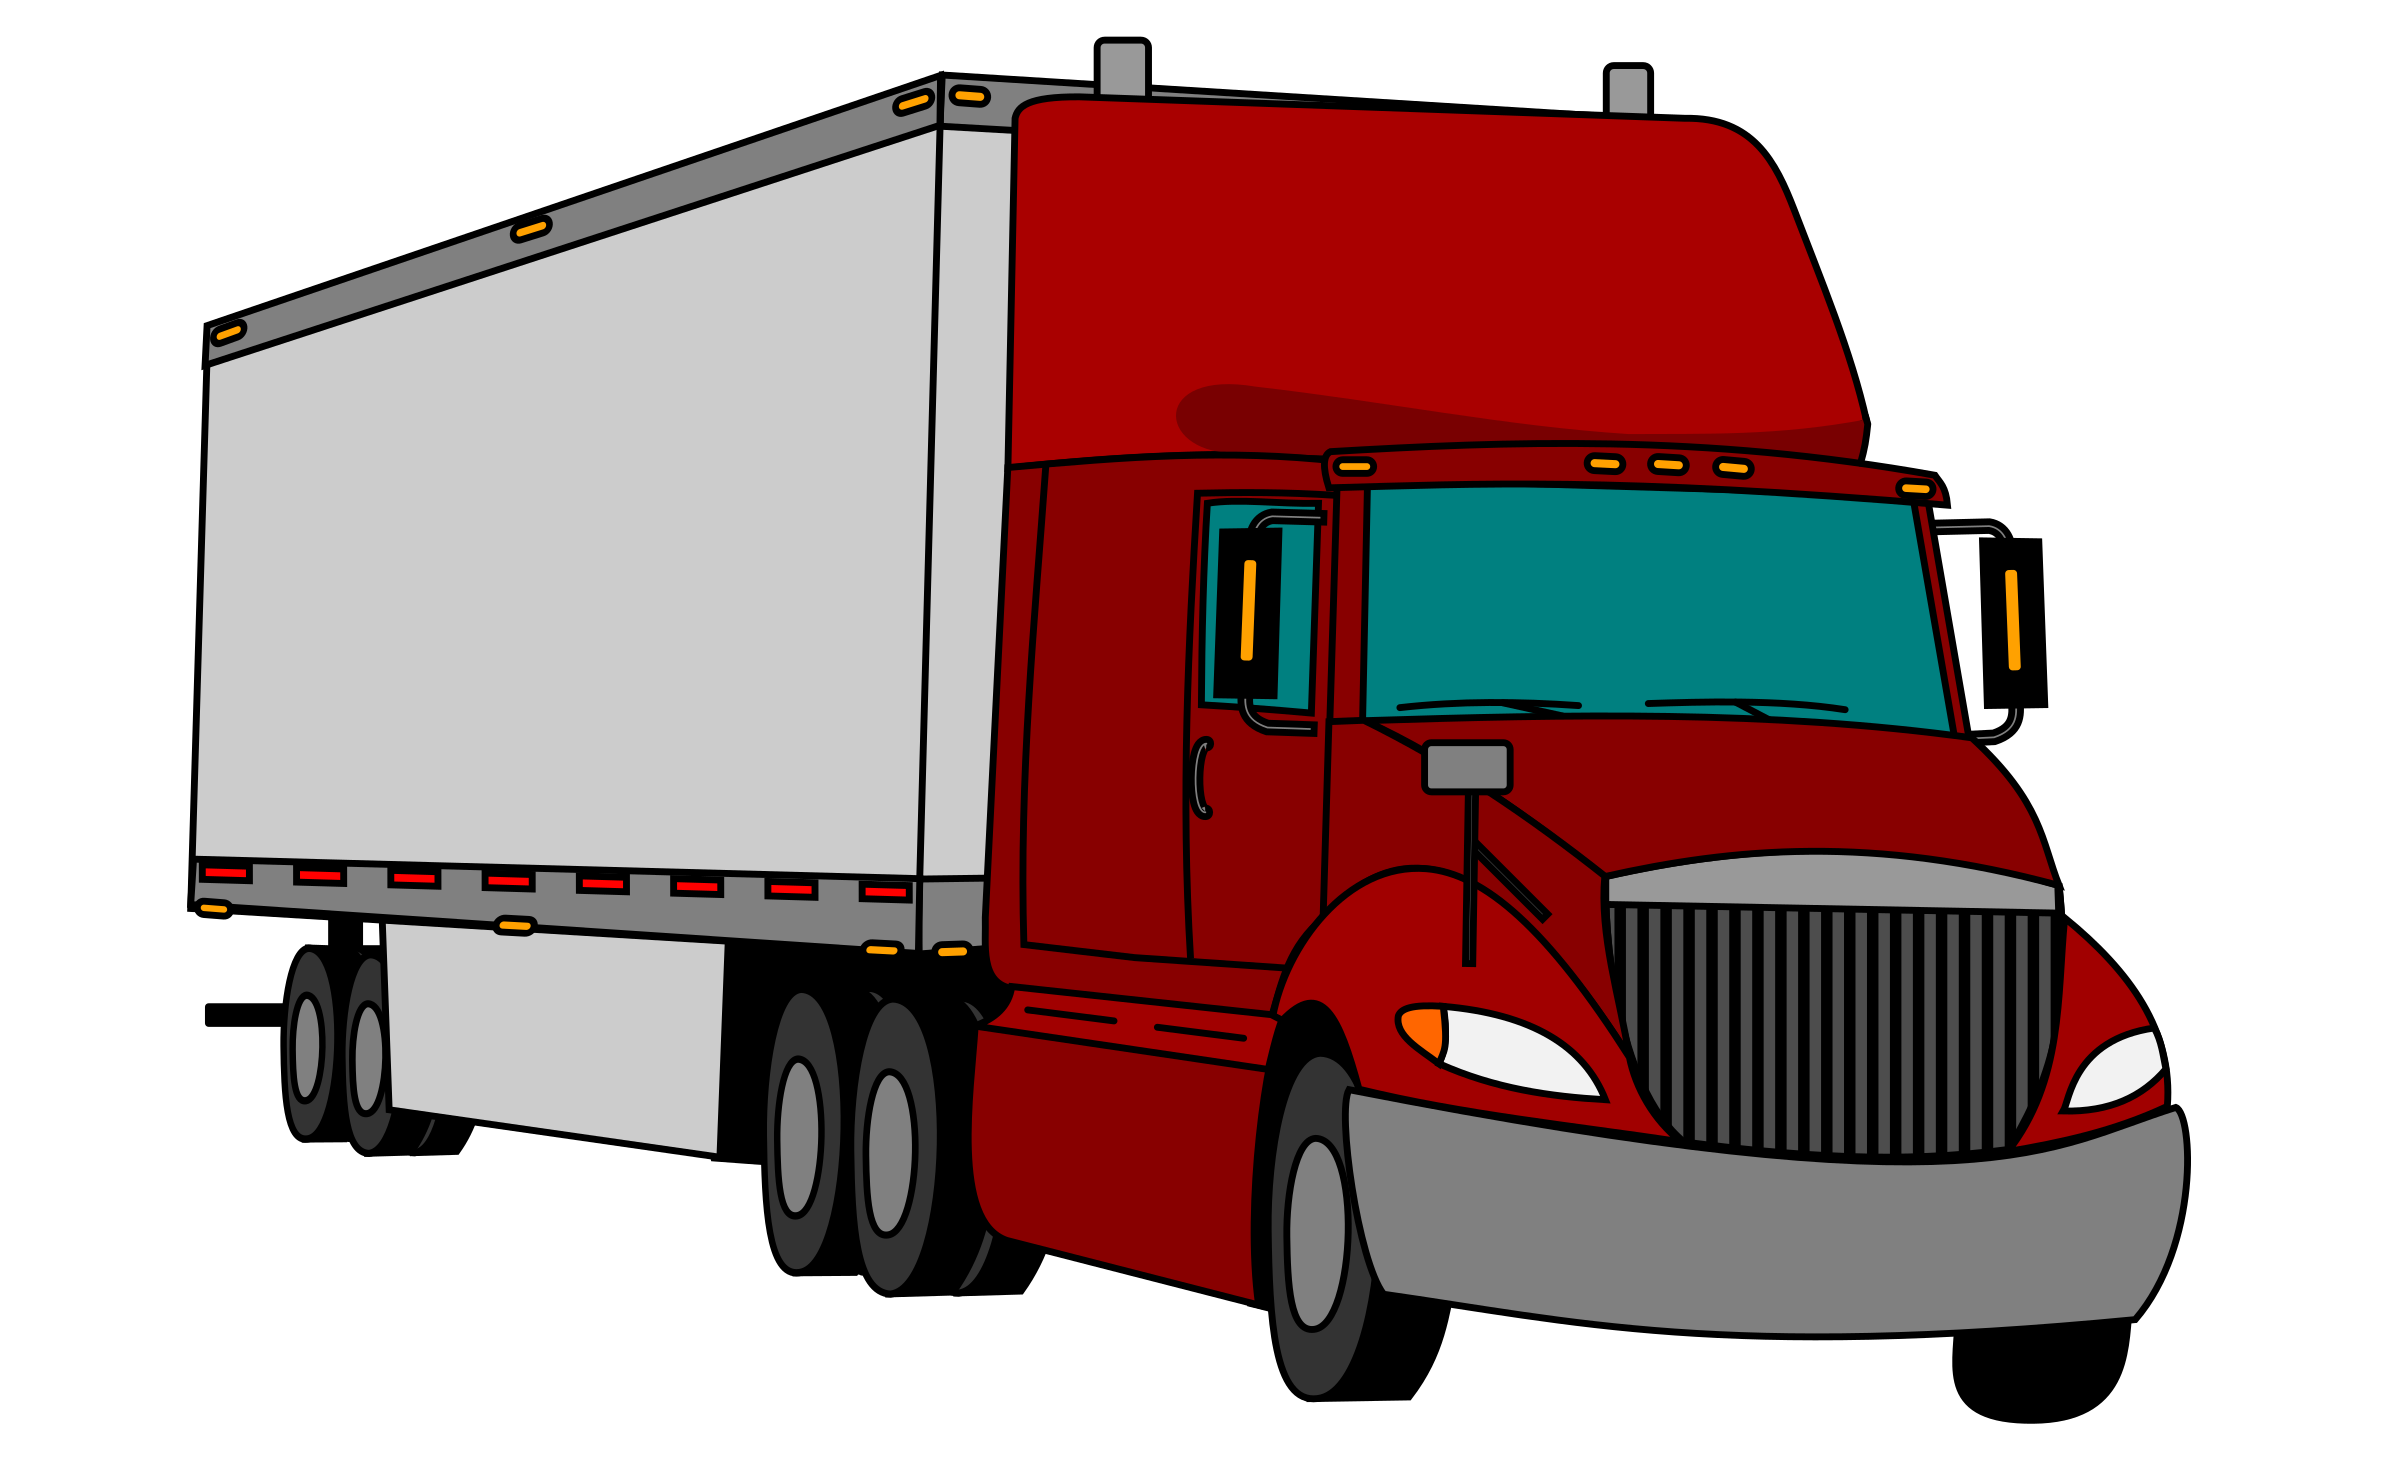 Trailers clip. Tractor trailer icons png